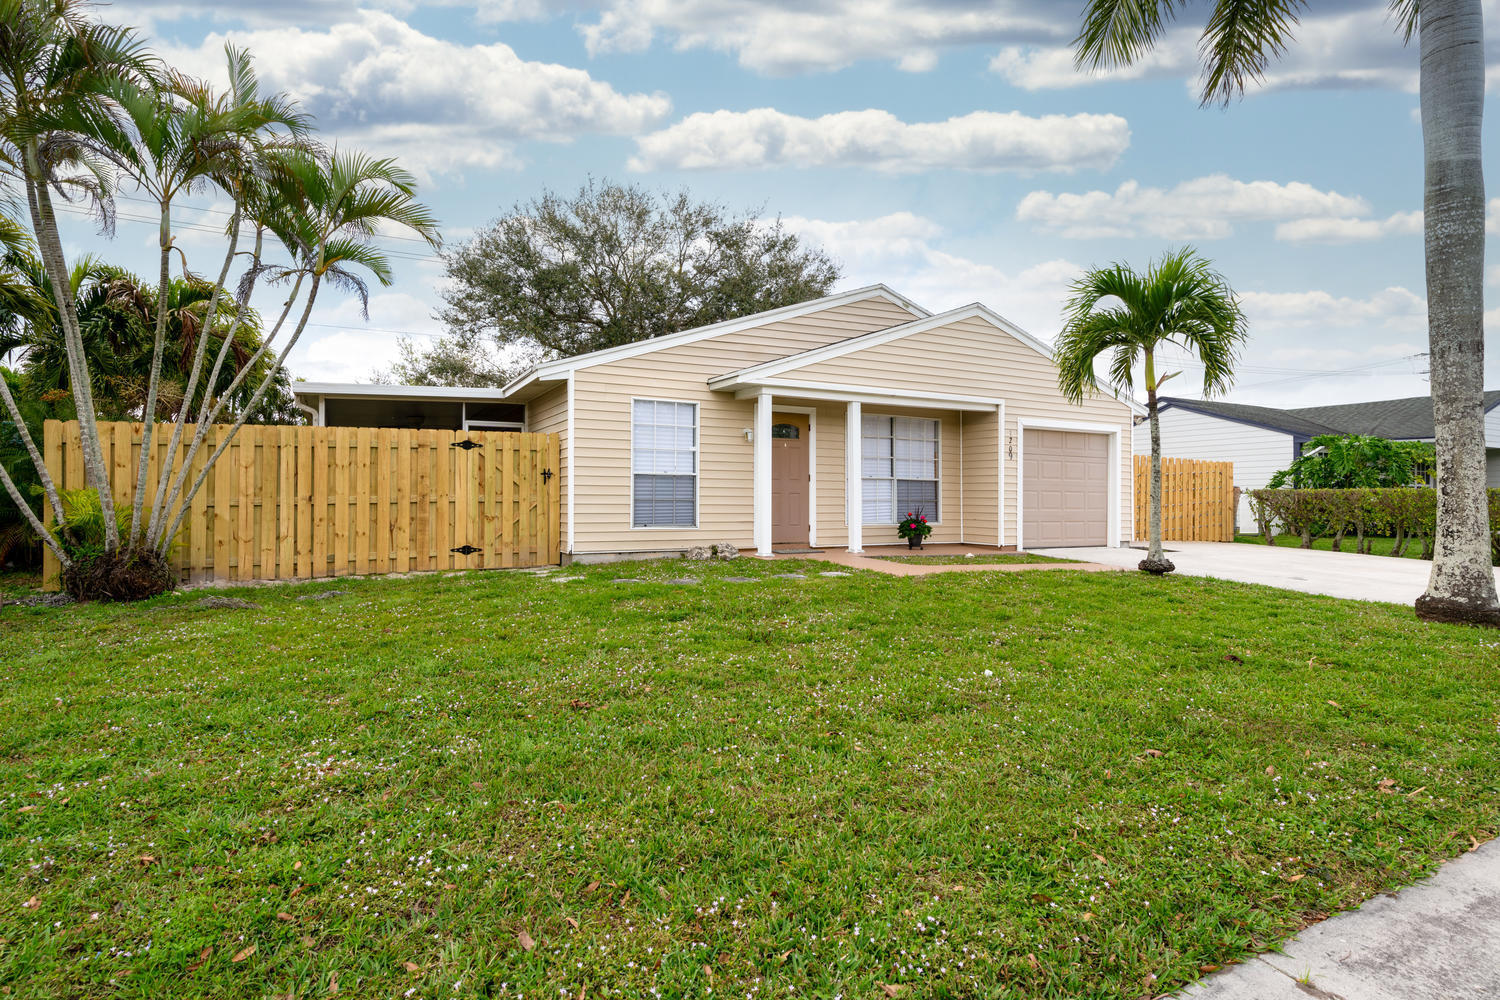 Home for sale in Counterpoint Royal Palm Beach Florida